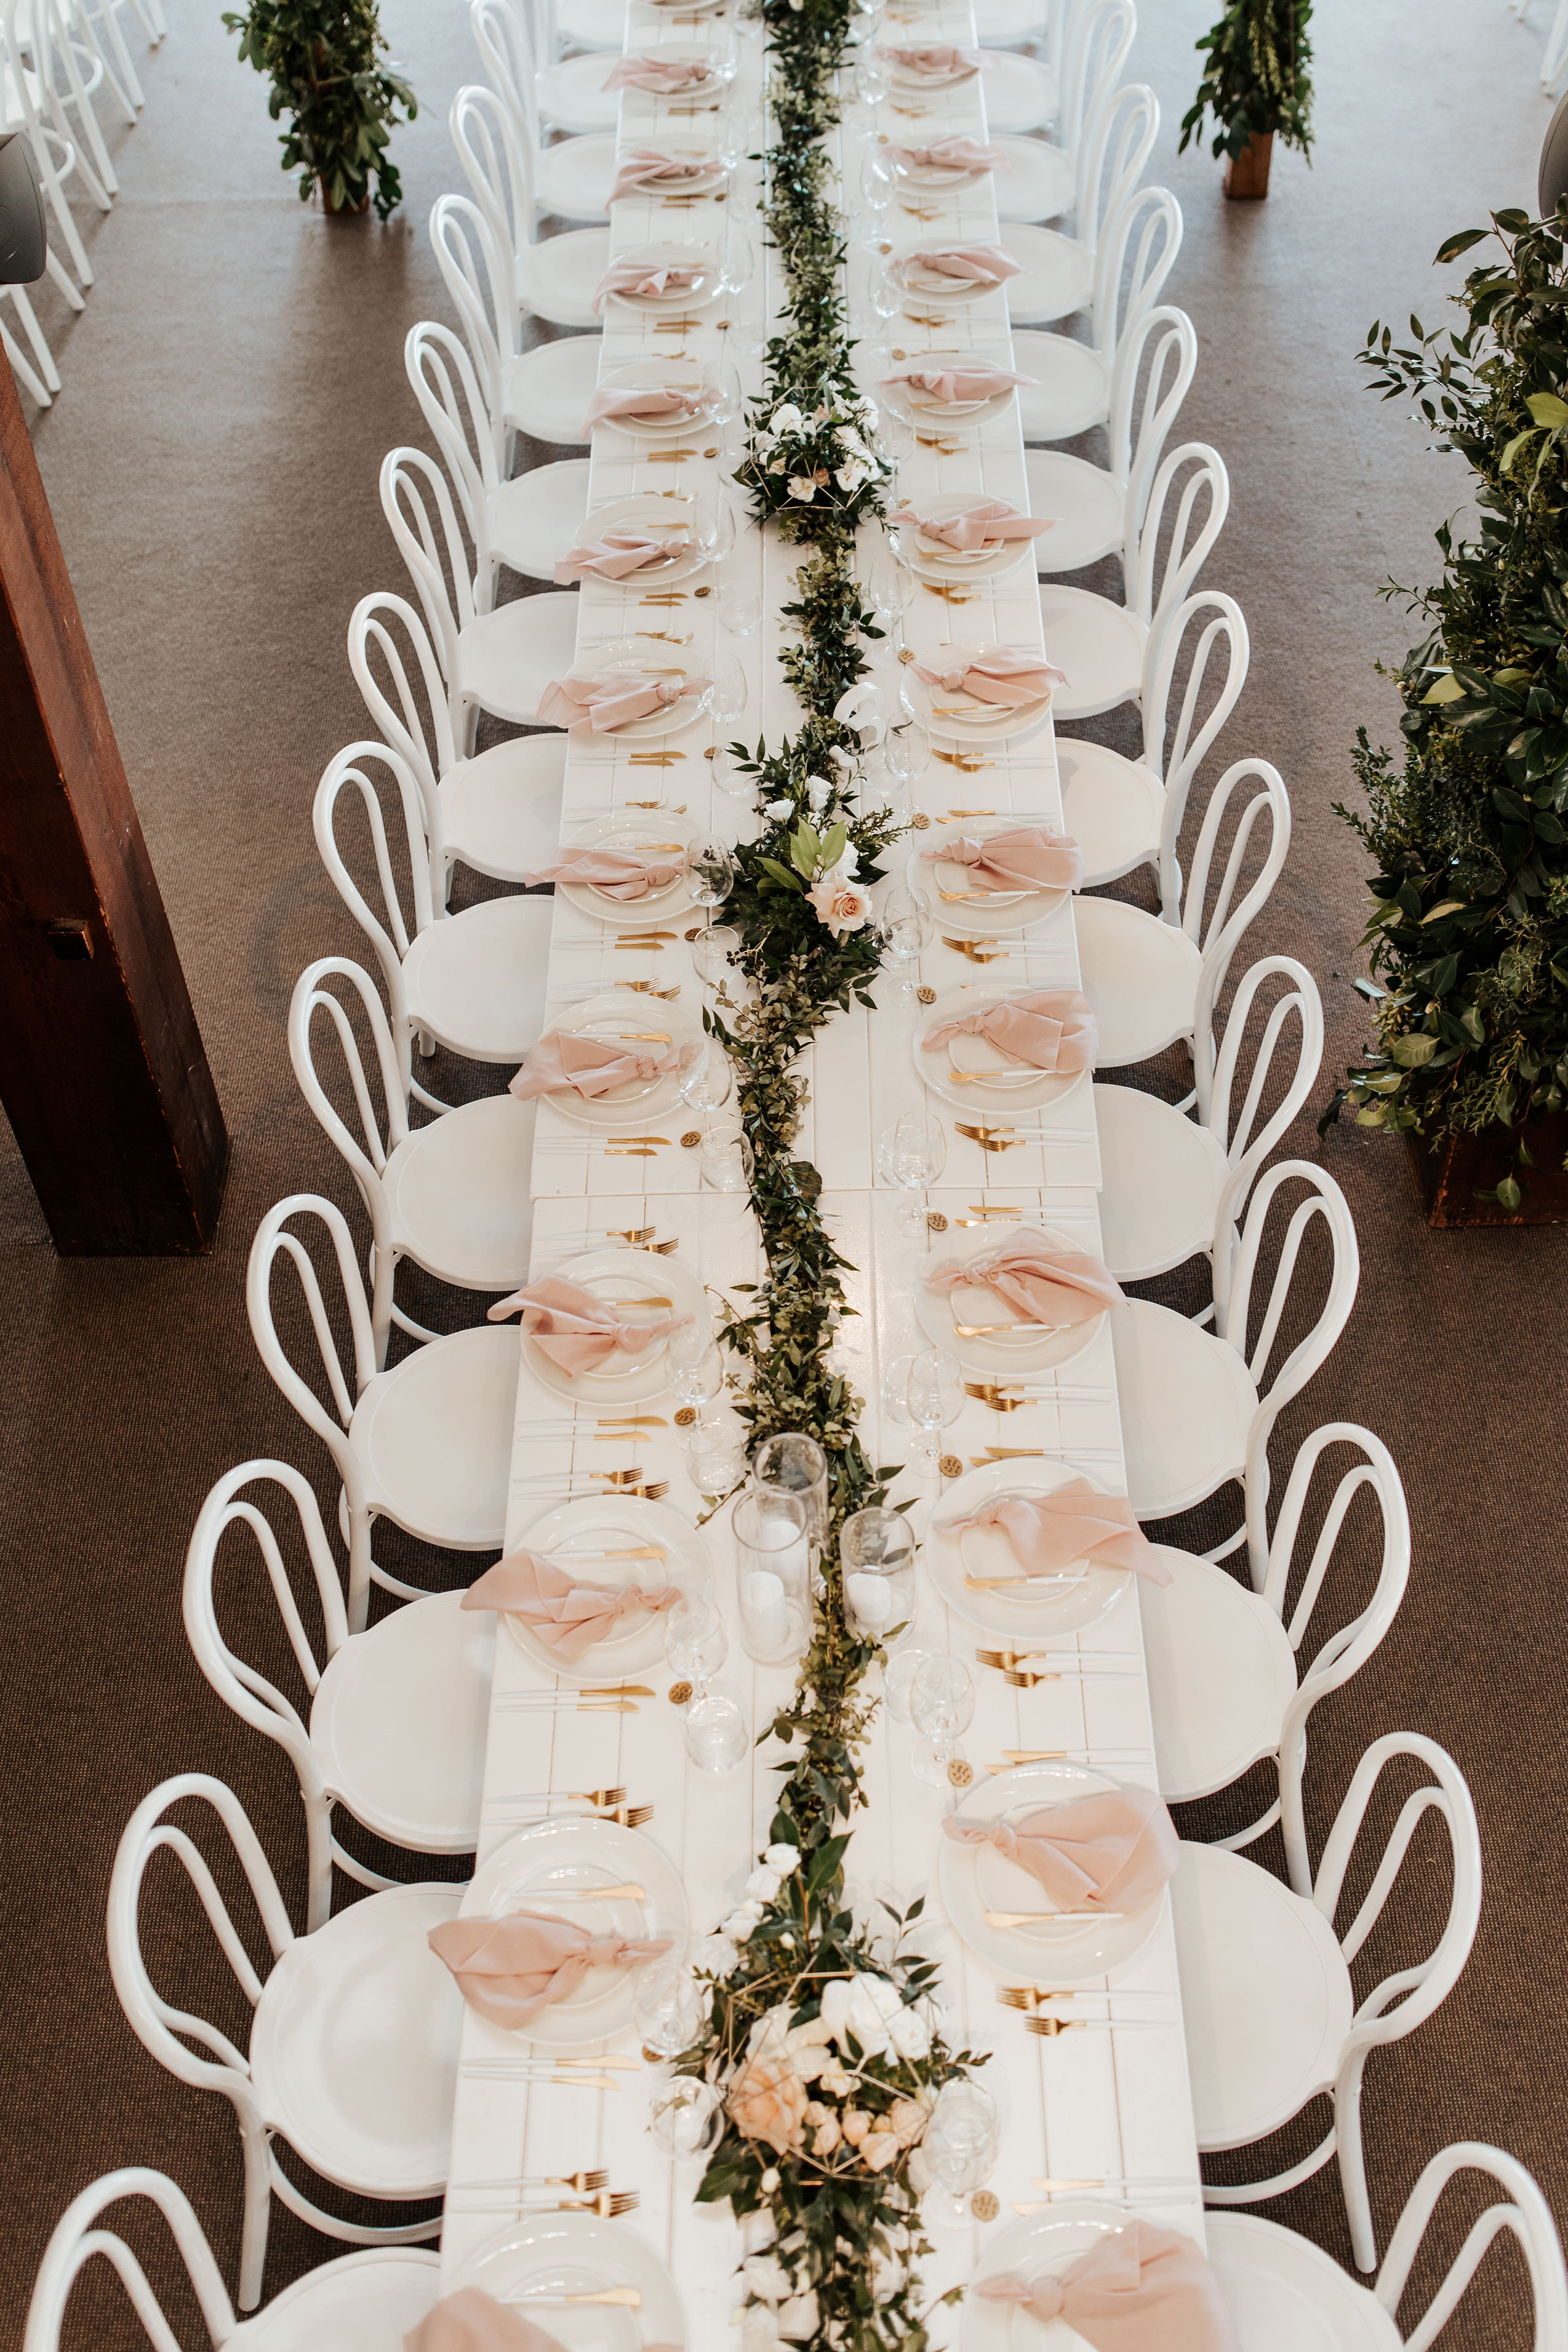 Greenery Reception Style with Antique Pink and White Wedding Flowers